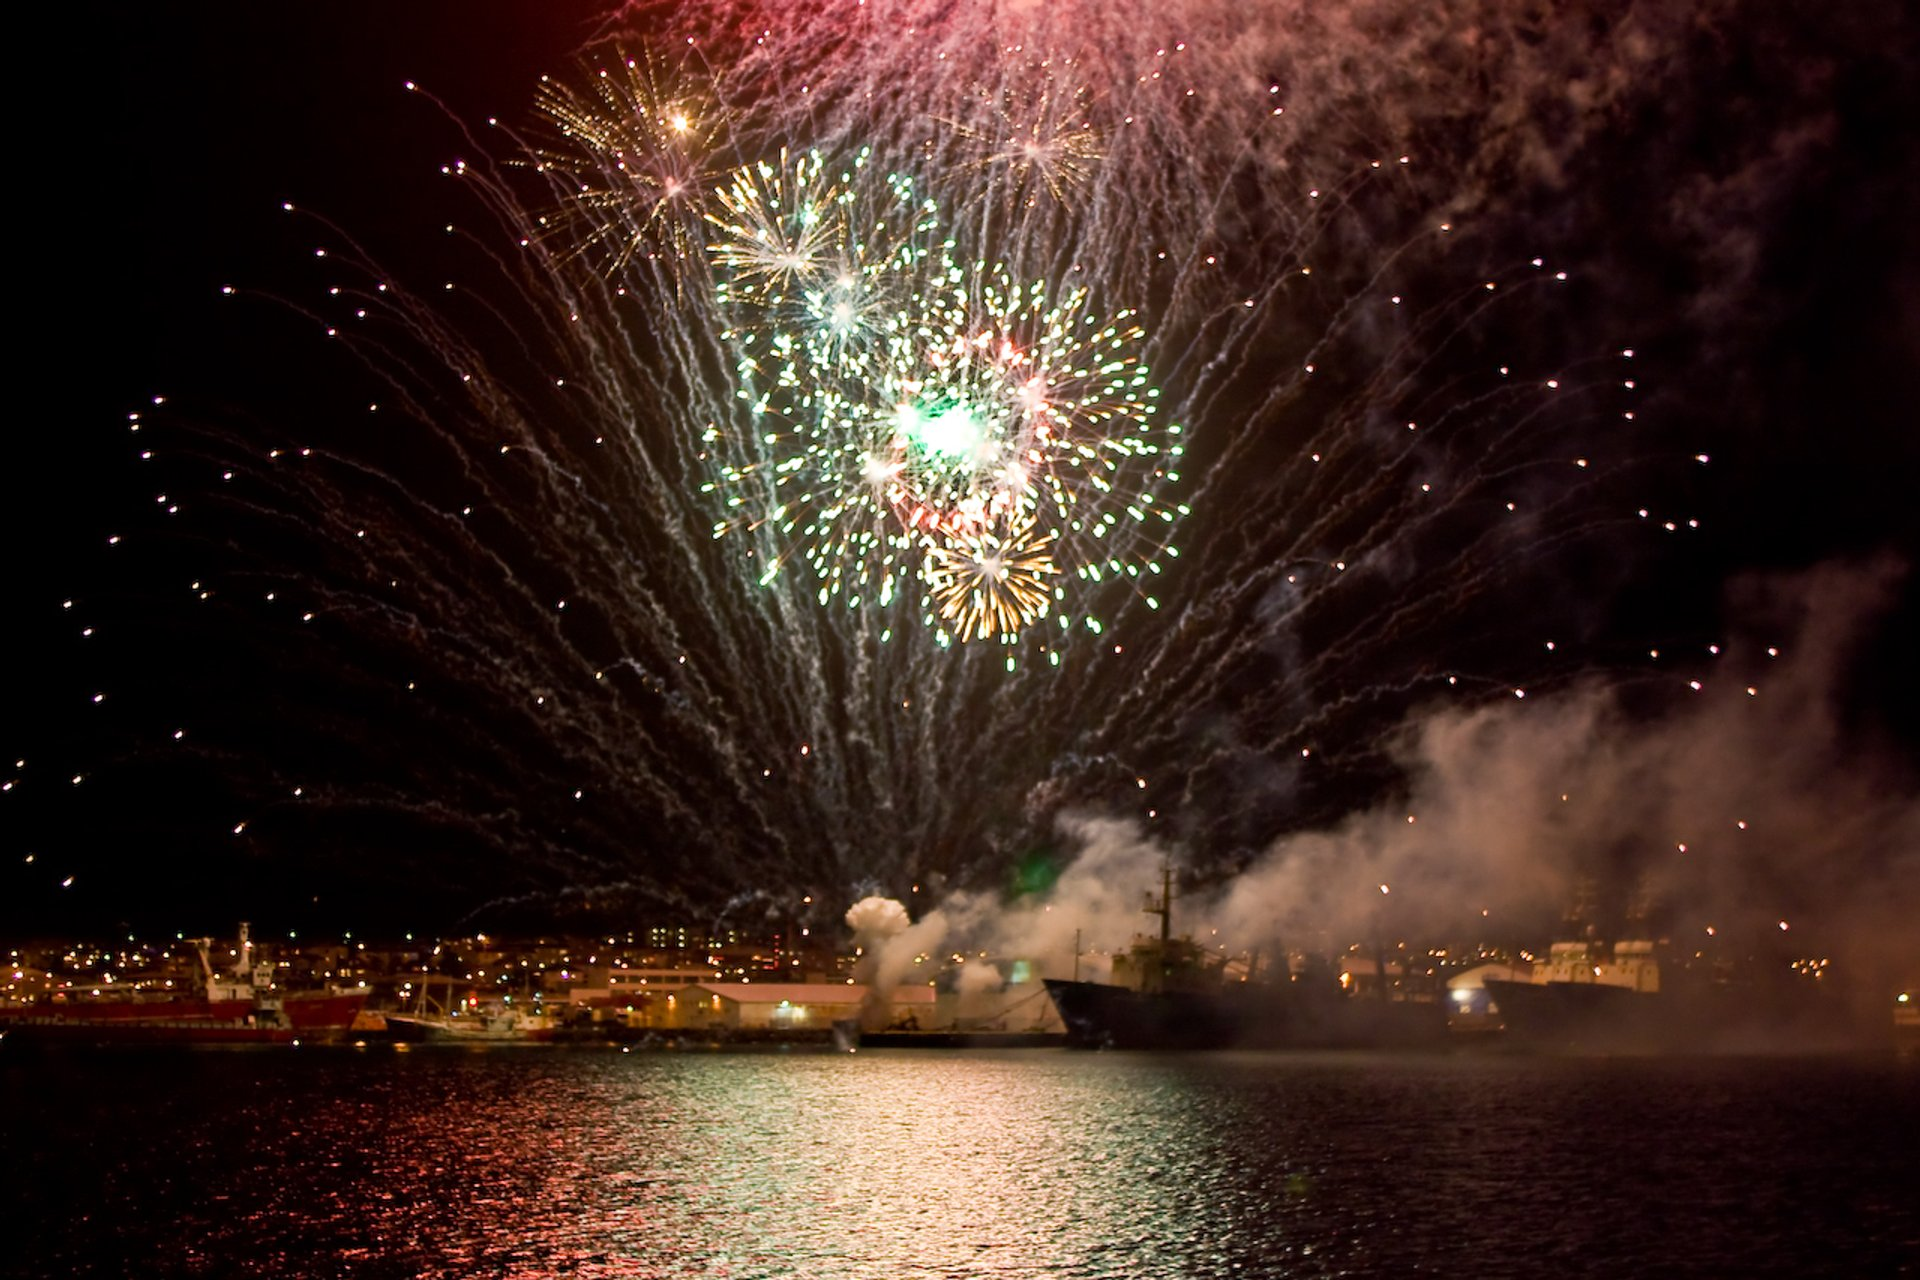 New Year's Eve Fireworks in Reykjavik - Best Season 2020